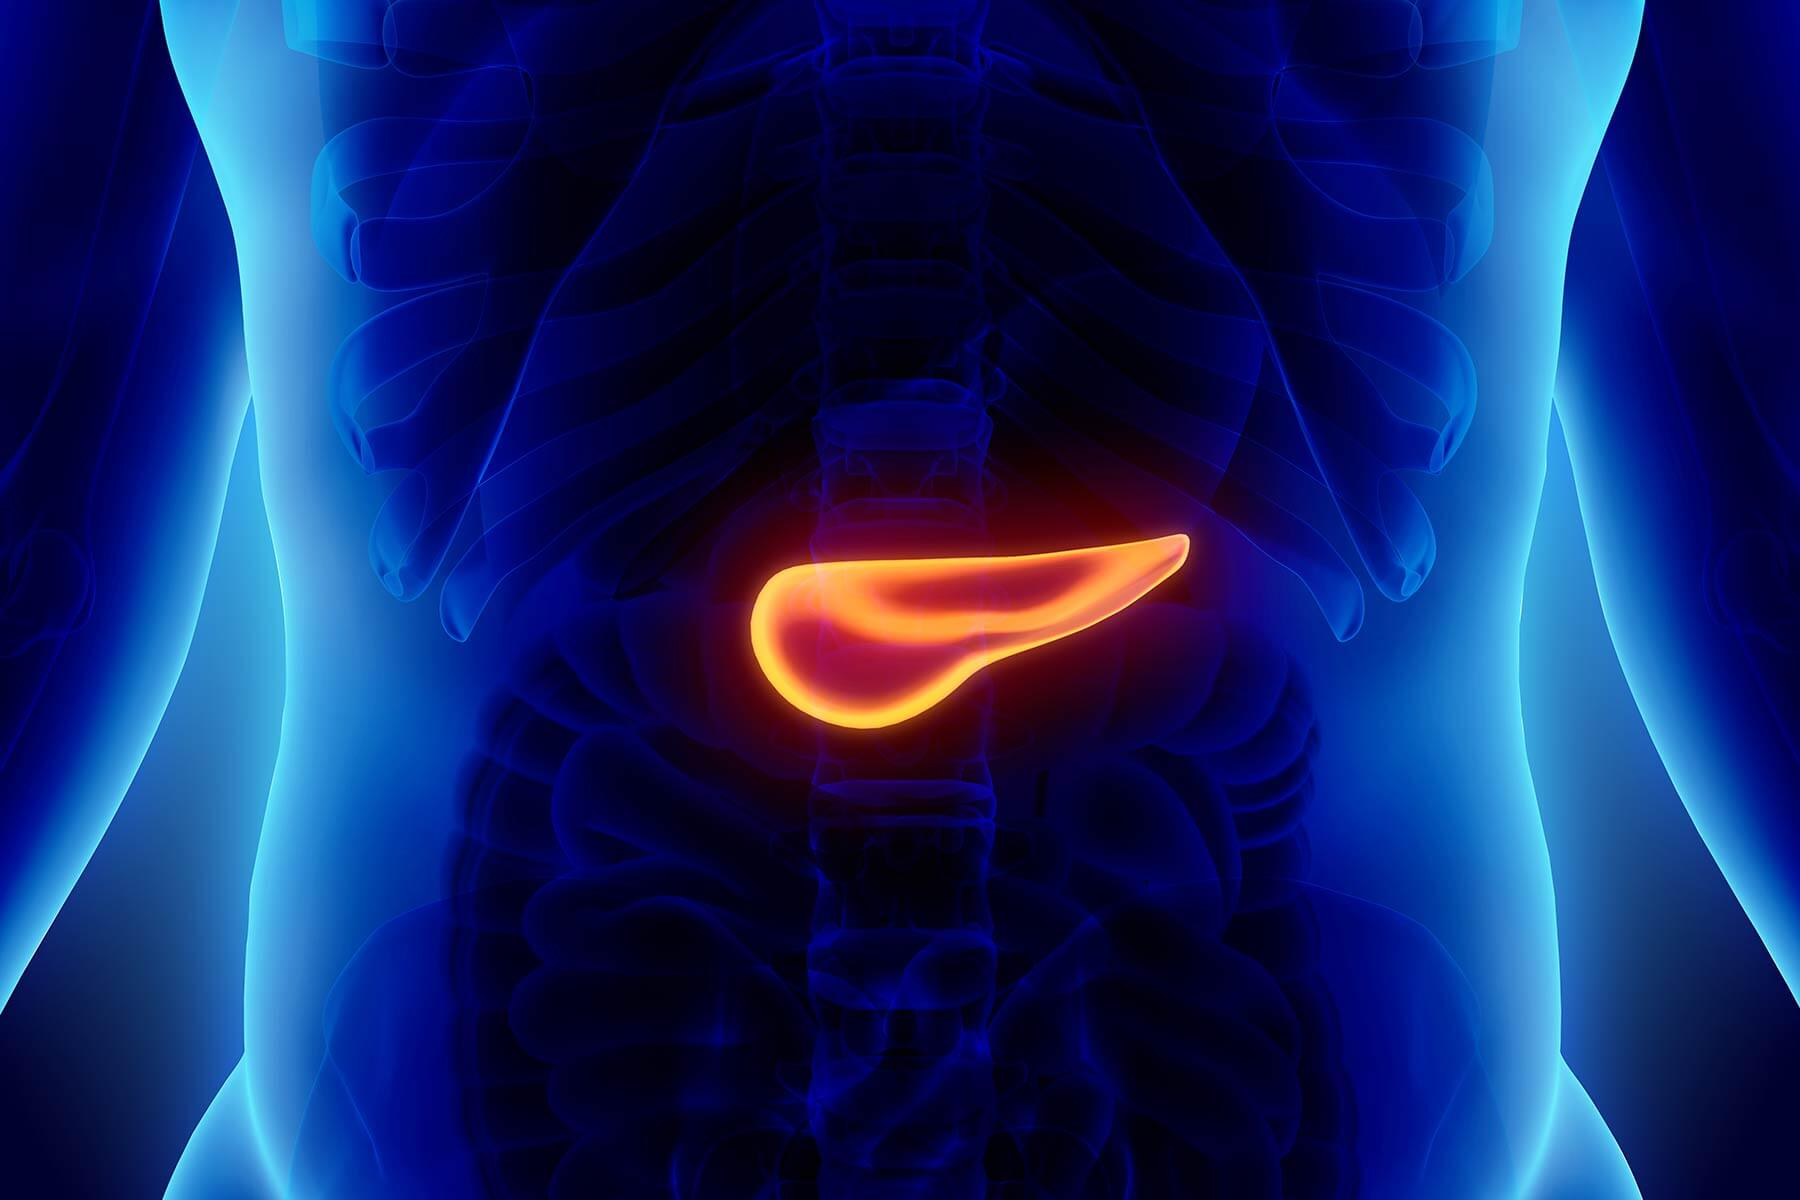 Scan of the abdomen and pancreas, showing where in the body patients would experience pancreatic cancer symptoms